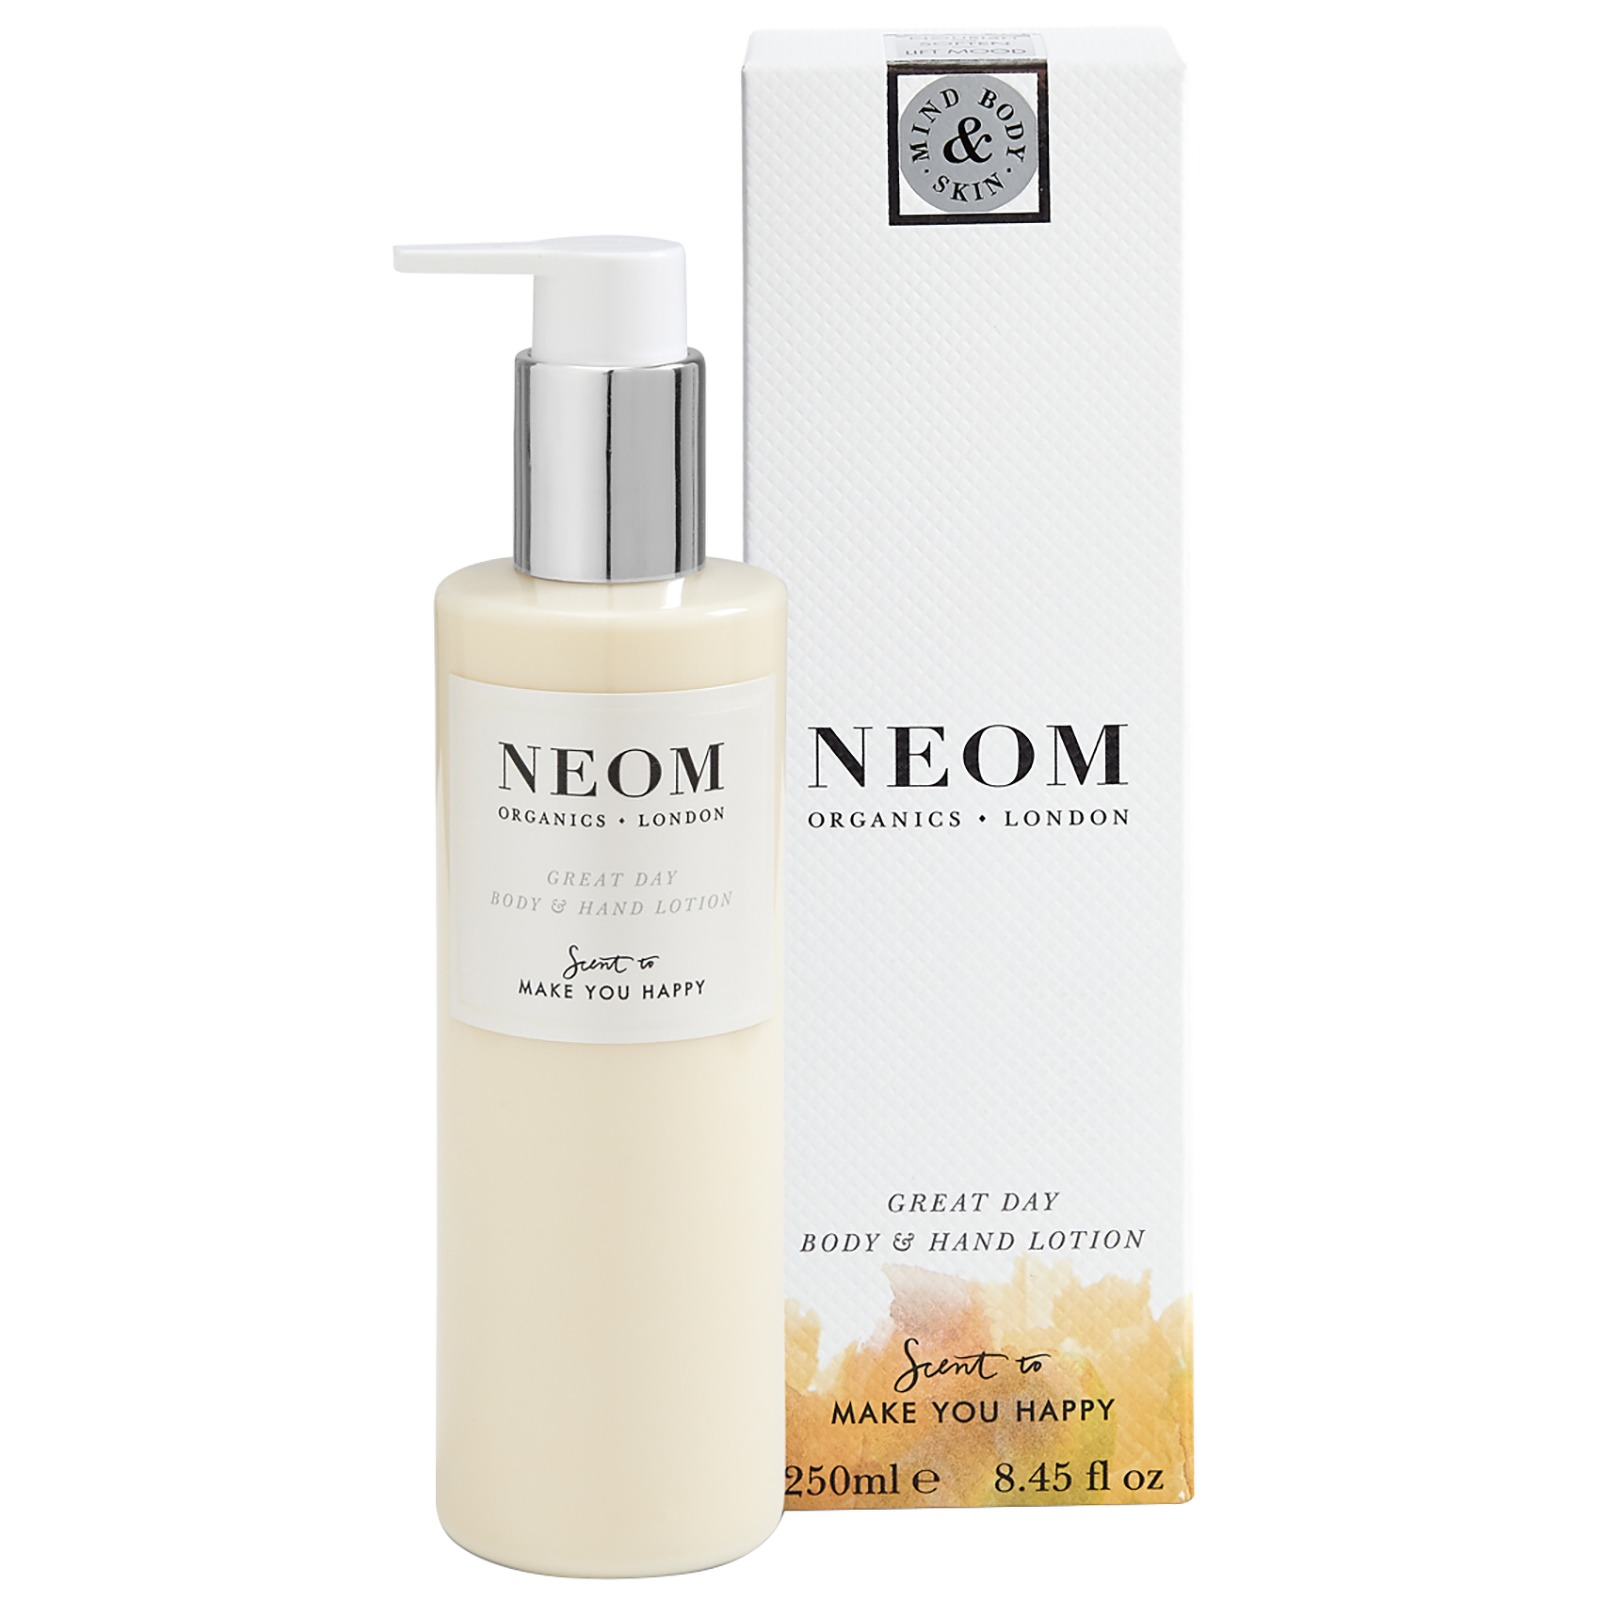 Neom Organics London Scent To Make You Happy Great Day Body & Hand Lotion 250ml